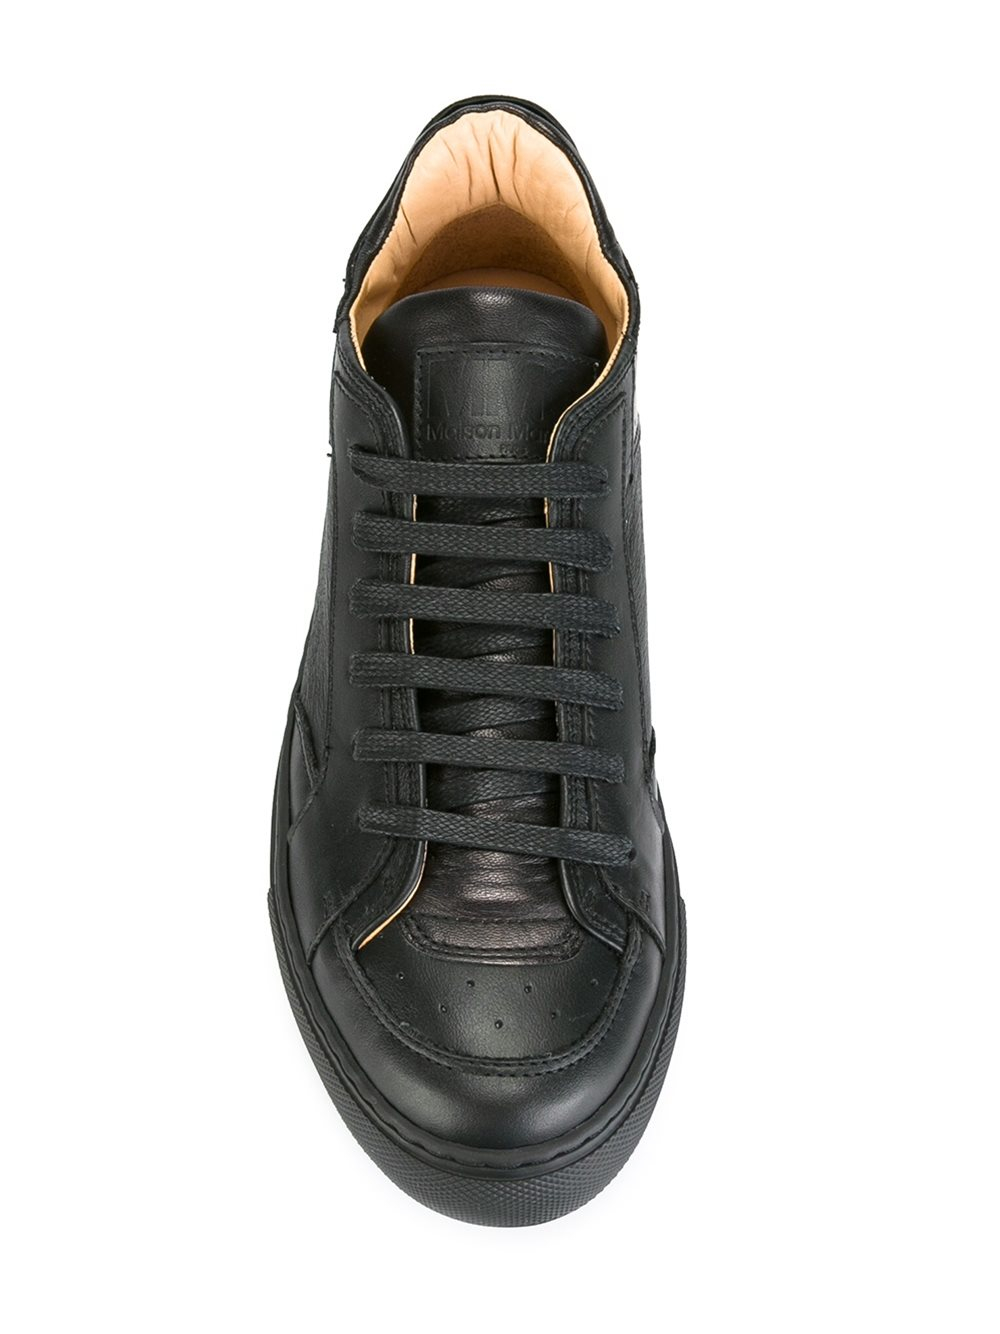 MM6 by Maison Martin Margiela Leather Classic Lace-up Sneakers in Black